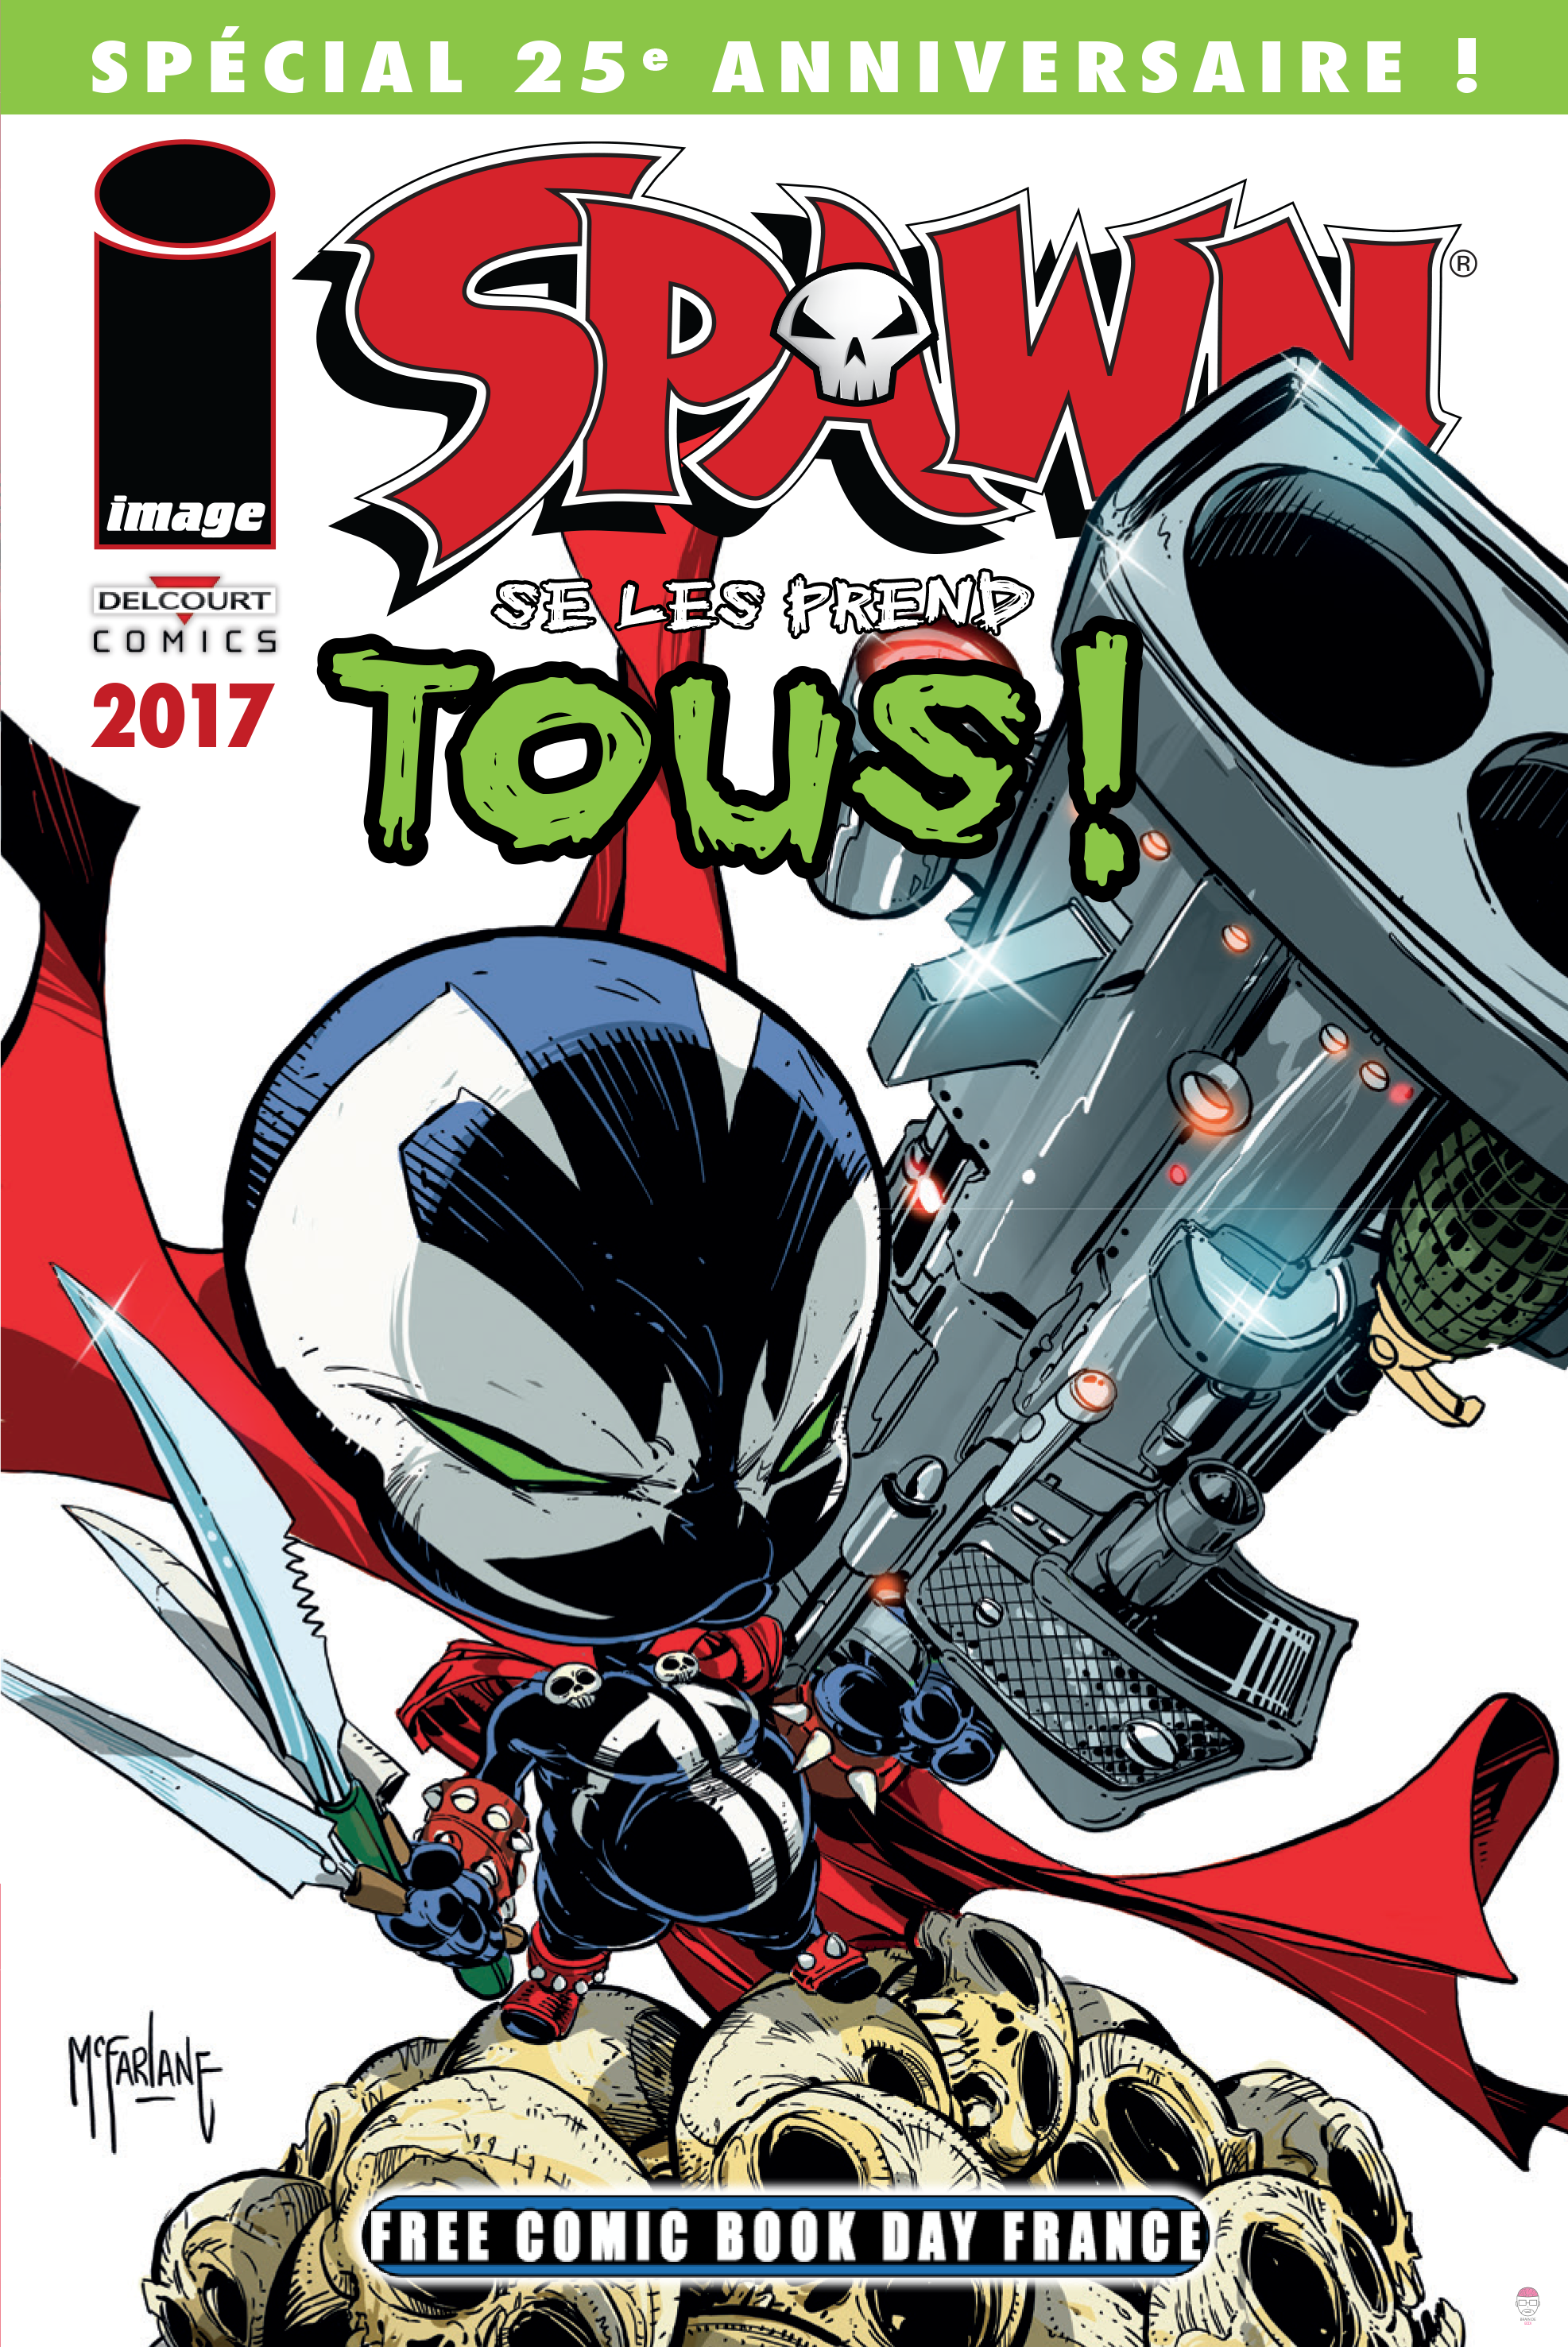 Free-Comic-Book-Day-2017-Spawn Free Comic Book Day 2017 : tous les comics disponibles gratuitement le 6 mai